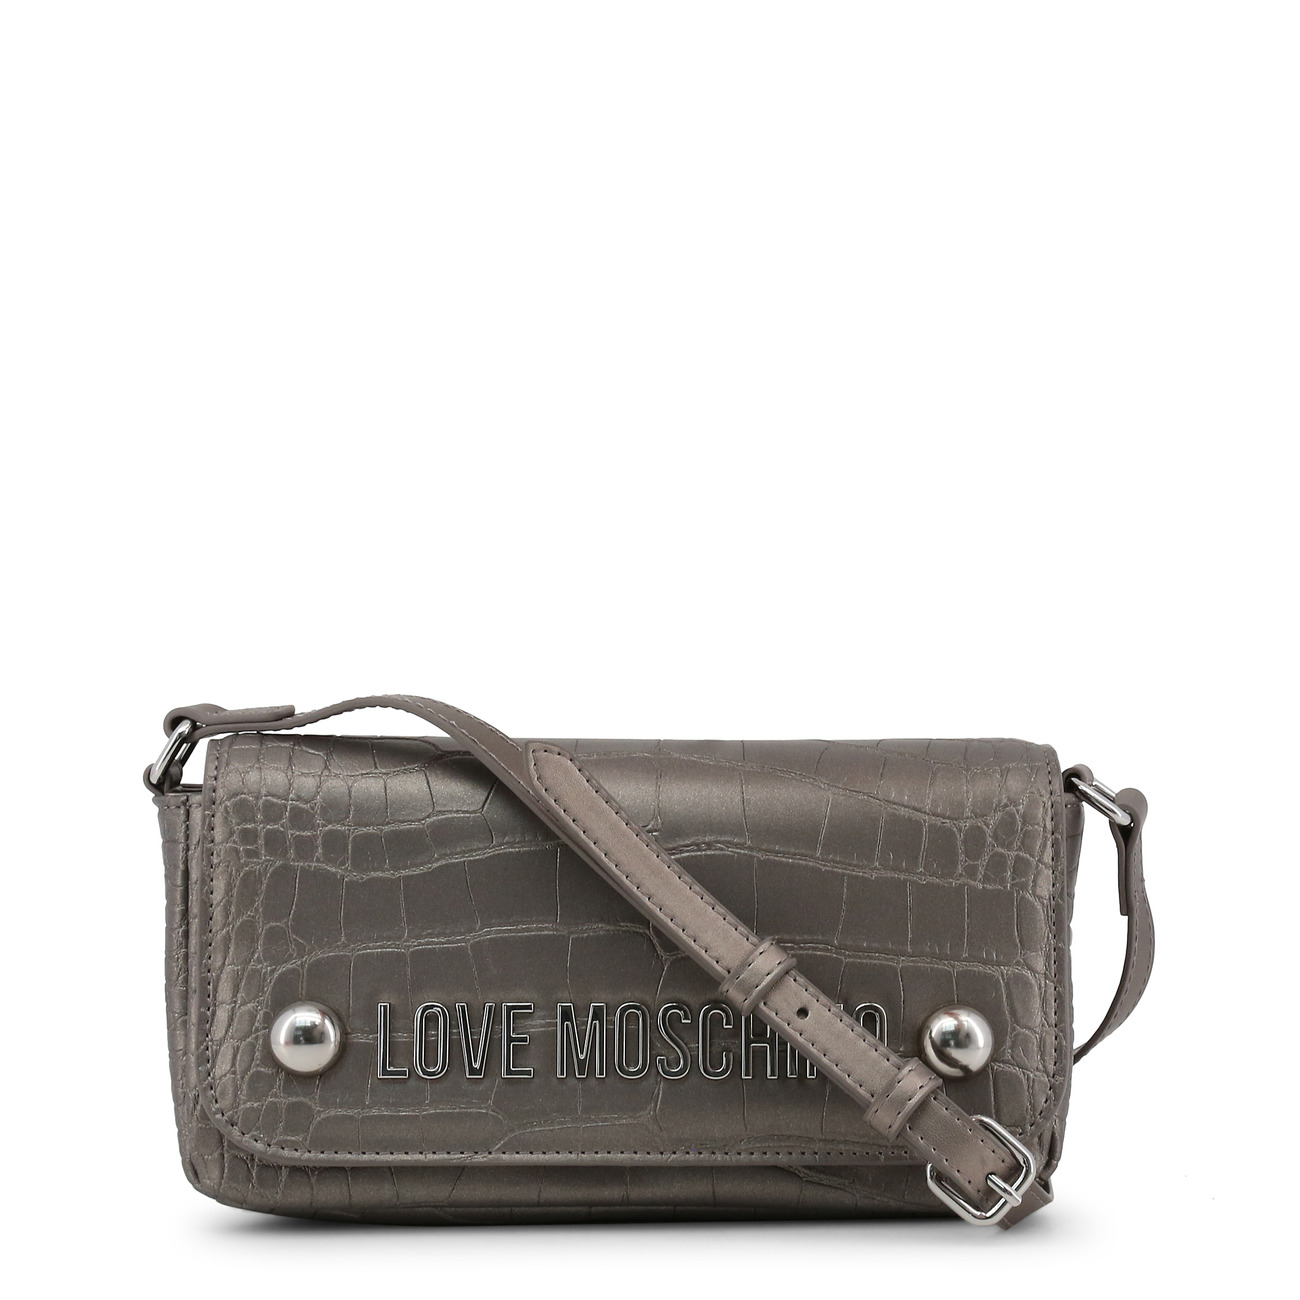 Automnehiver Femme Jc4134pp16lw Sac Bandoulière Love Moschino f7fqU1RIw